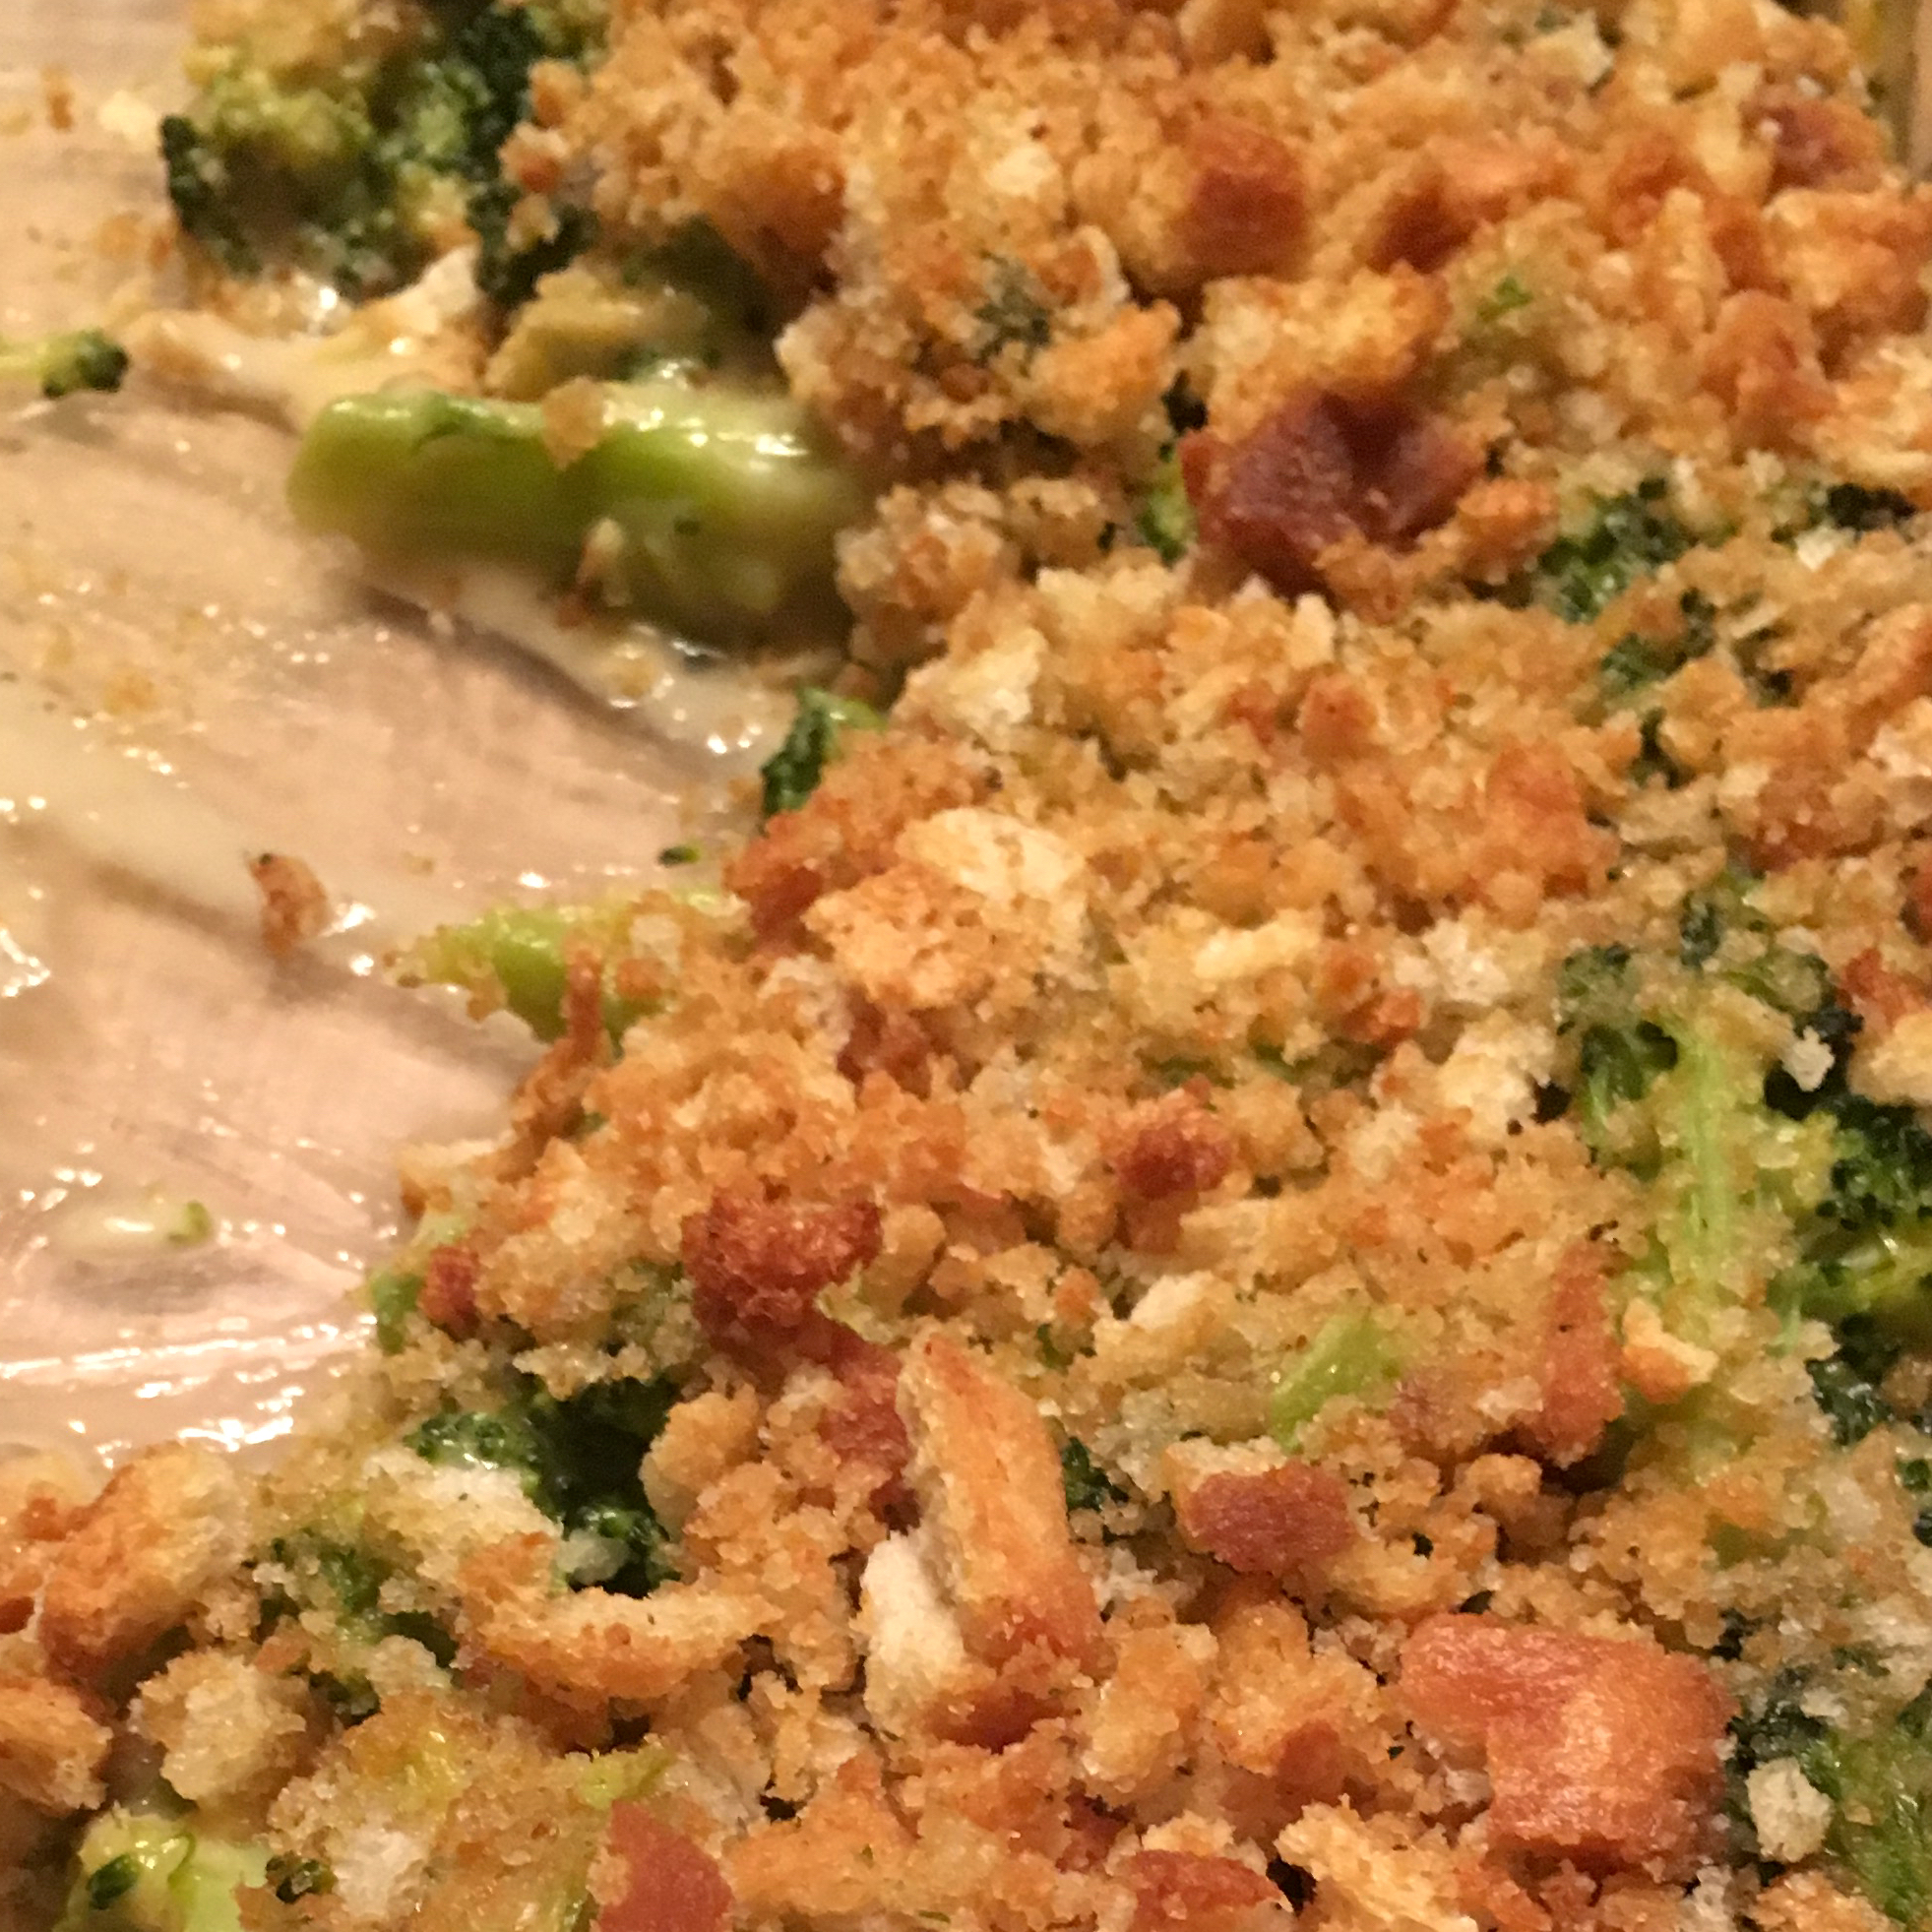 Aunt Millie's Broccoli Casserole topped with bread crumbs